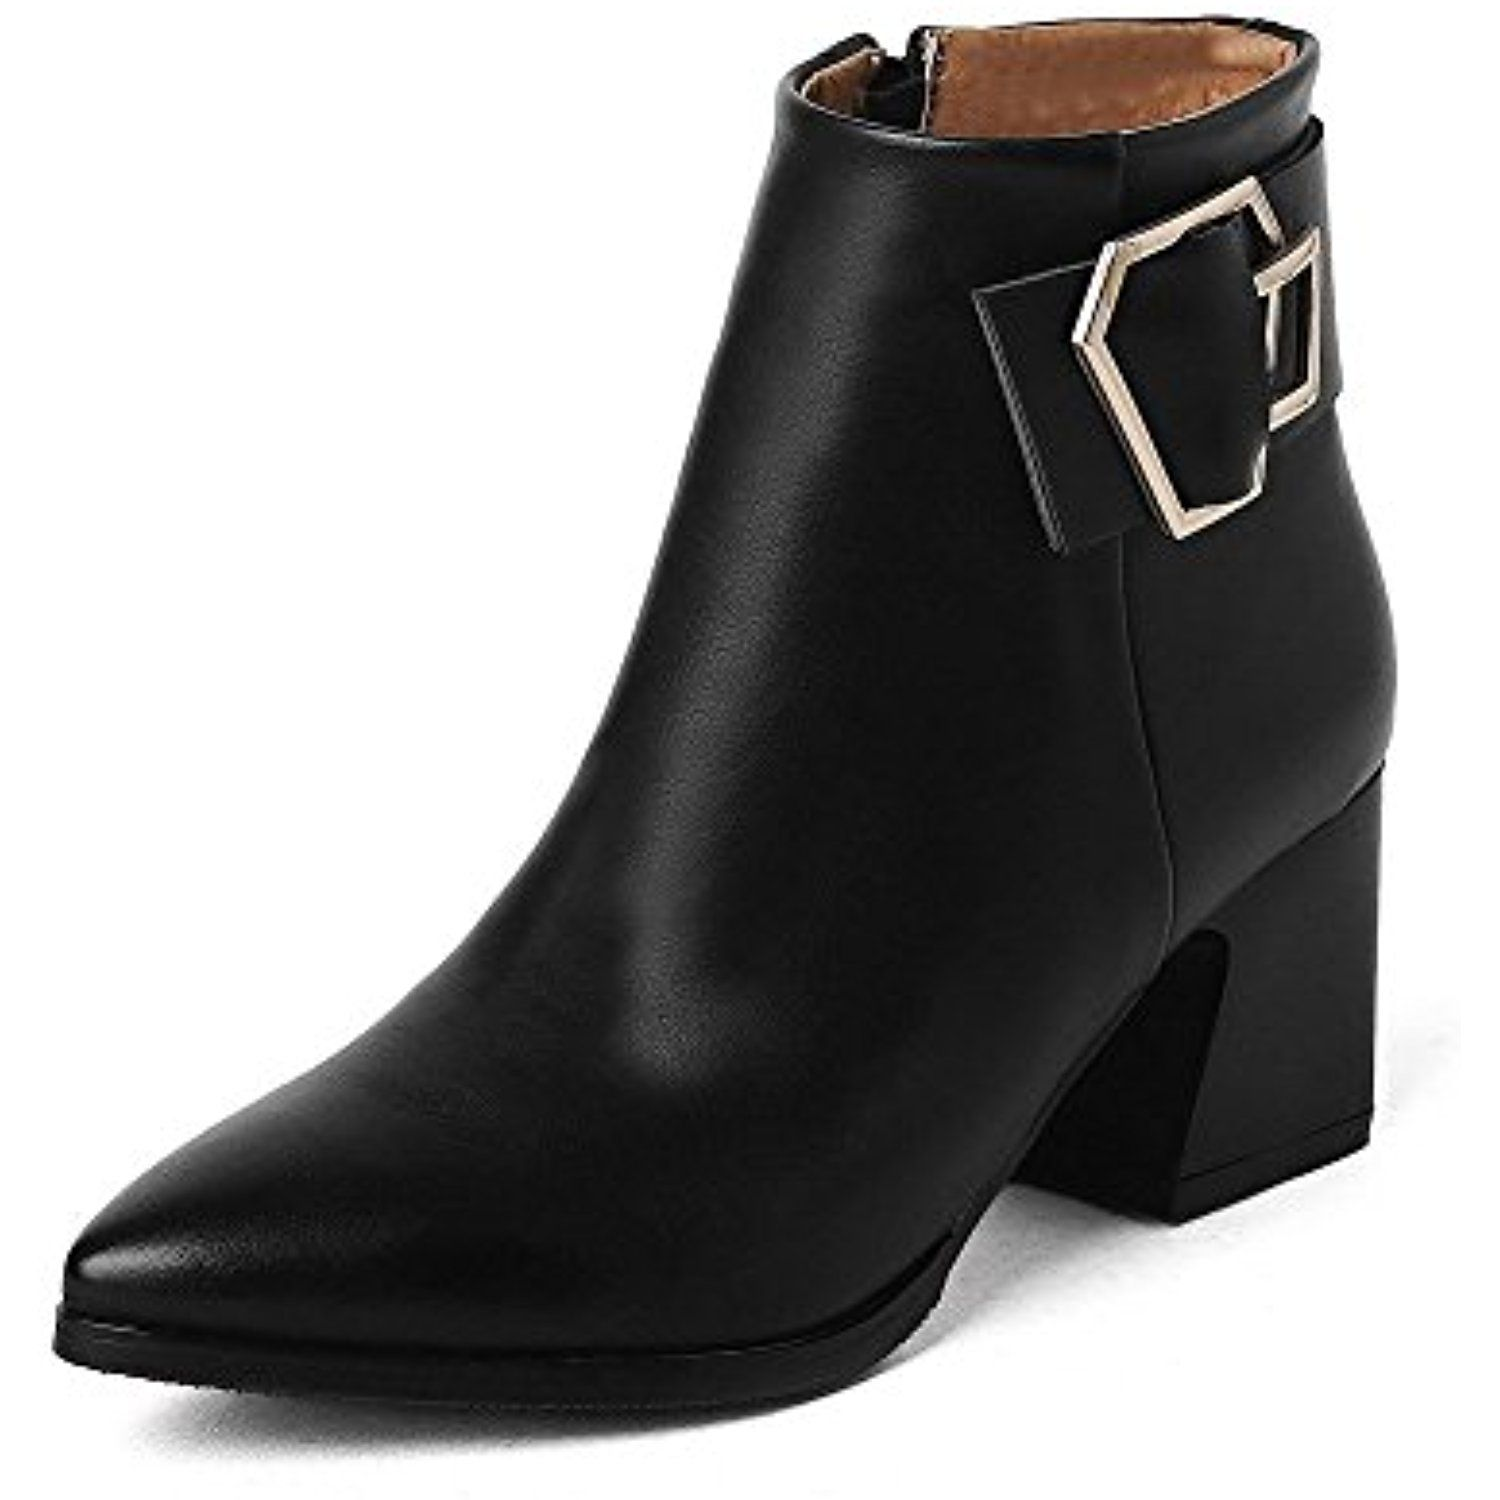 Women's Pointed Closed Toe Kitten Heels Ankle High Solid Boots